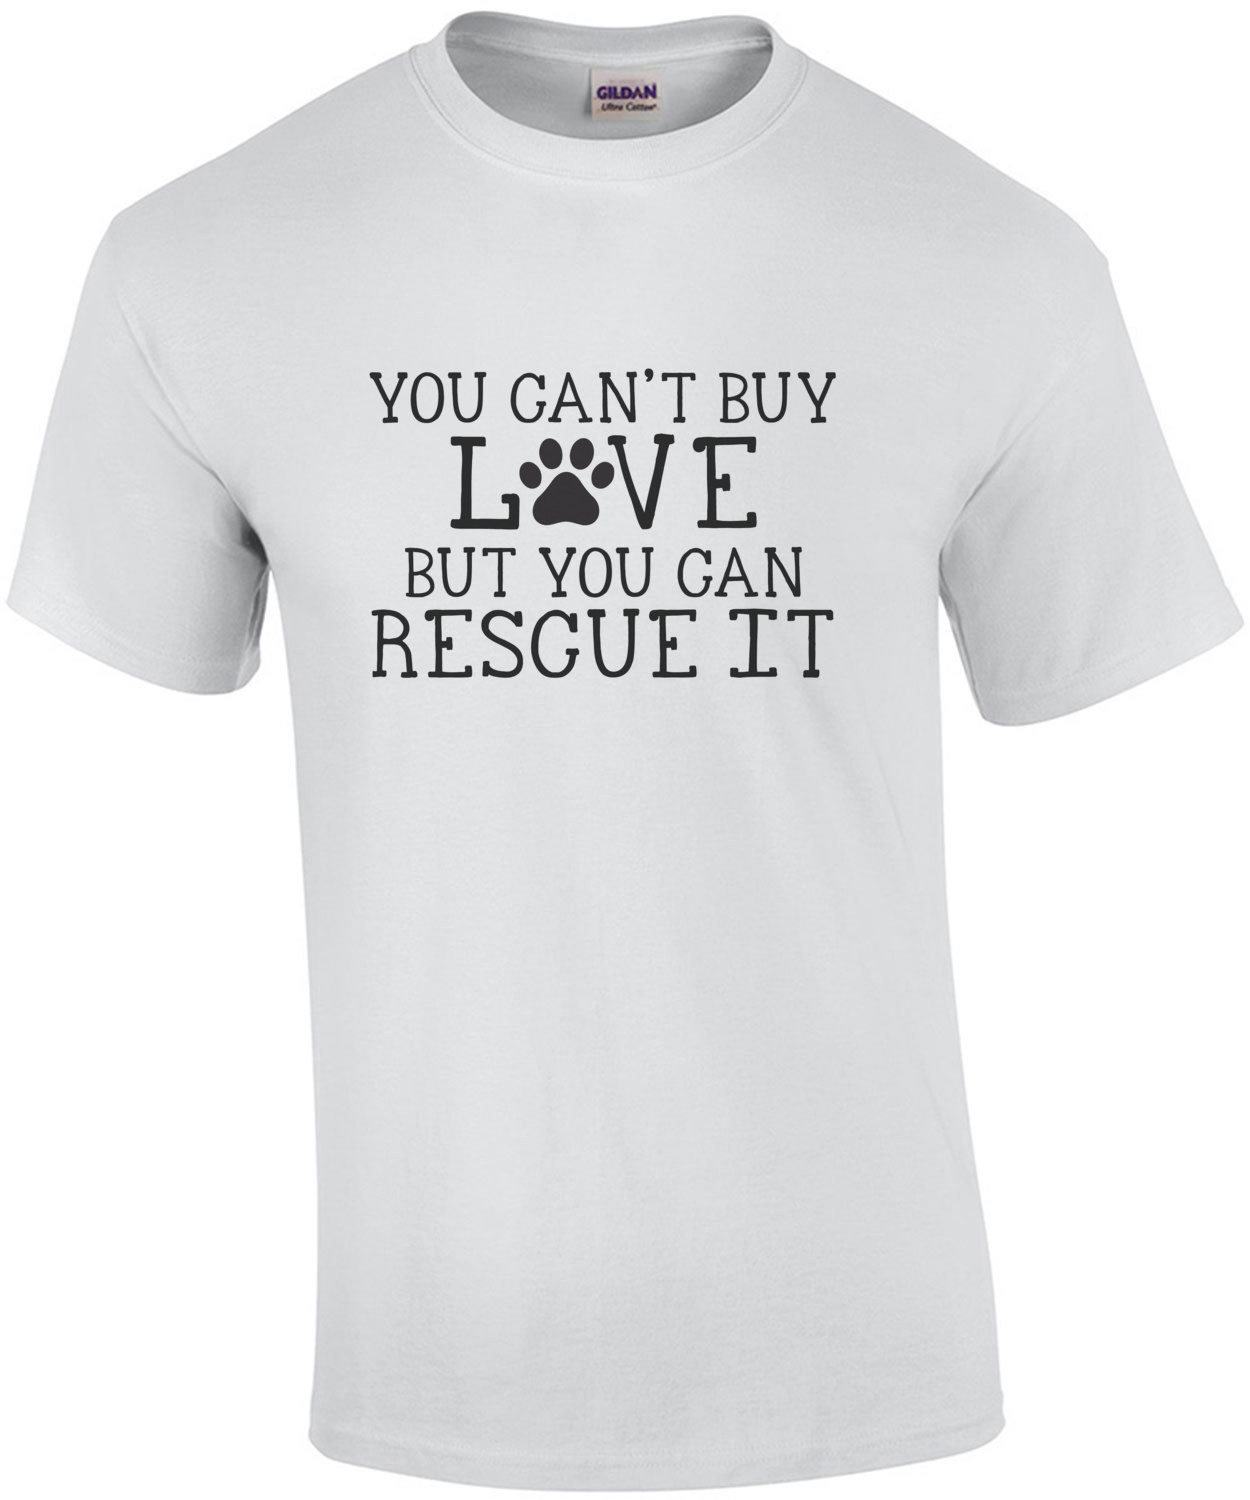 You can't buy love but you can rescue it - rescue dog